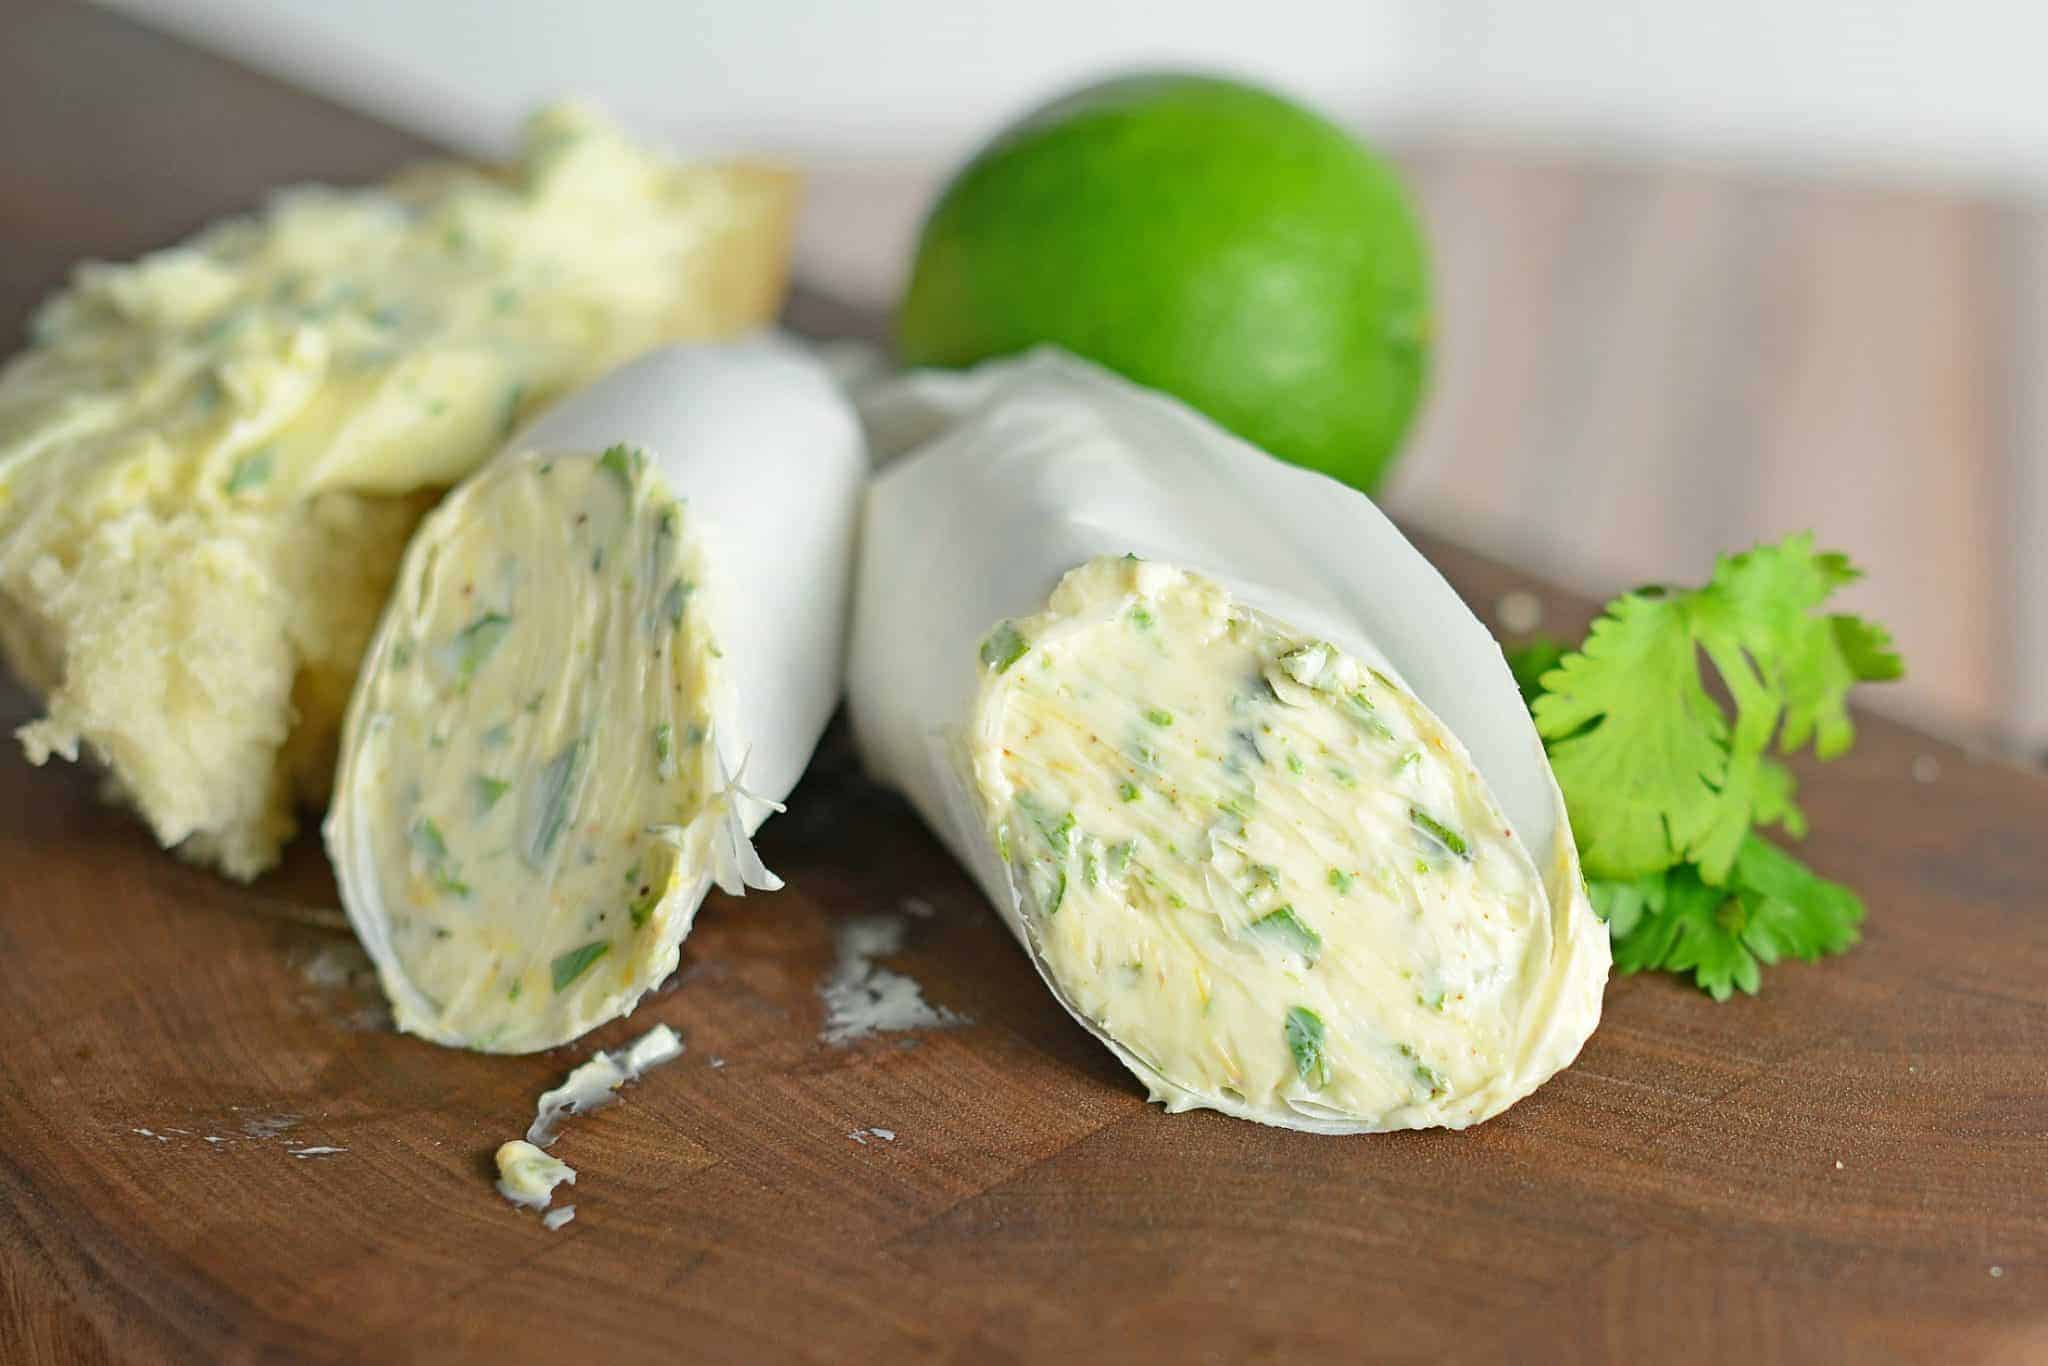 Chile Lime Butter- a zesty blended butter perfect for corn on the cob and sautéing vegetables. #flavoredbutter #limebutter www.savoryexperiments.com